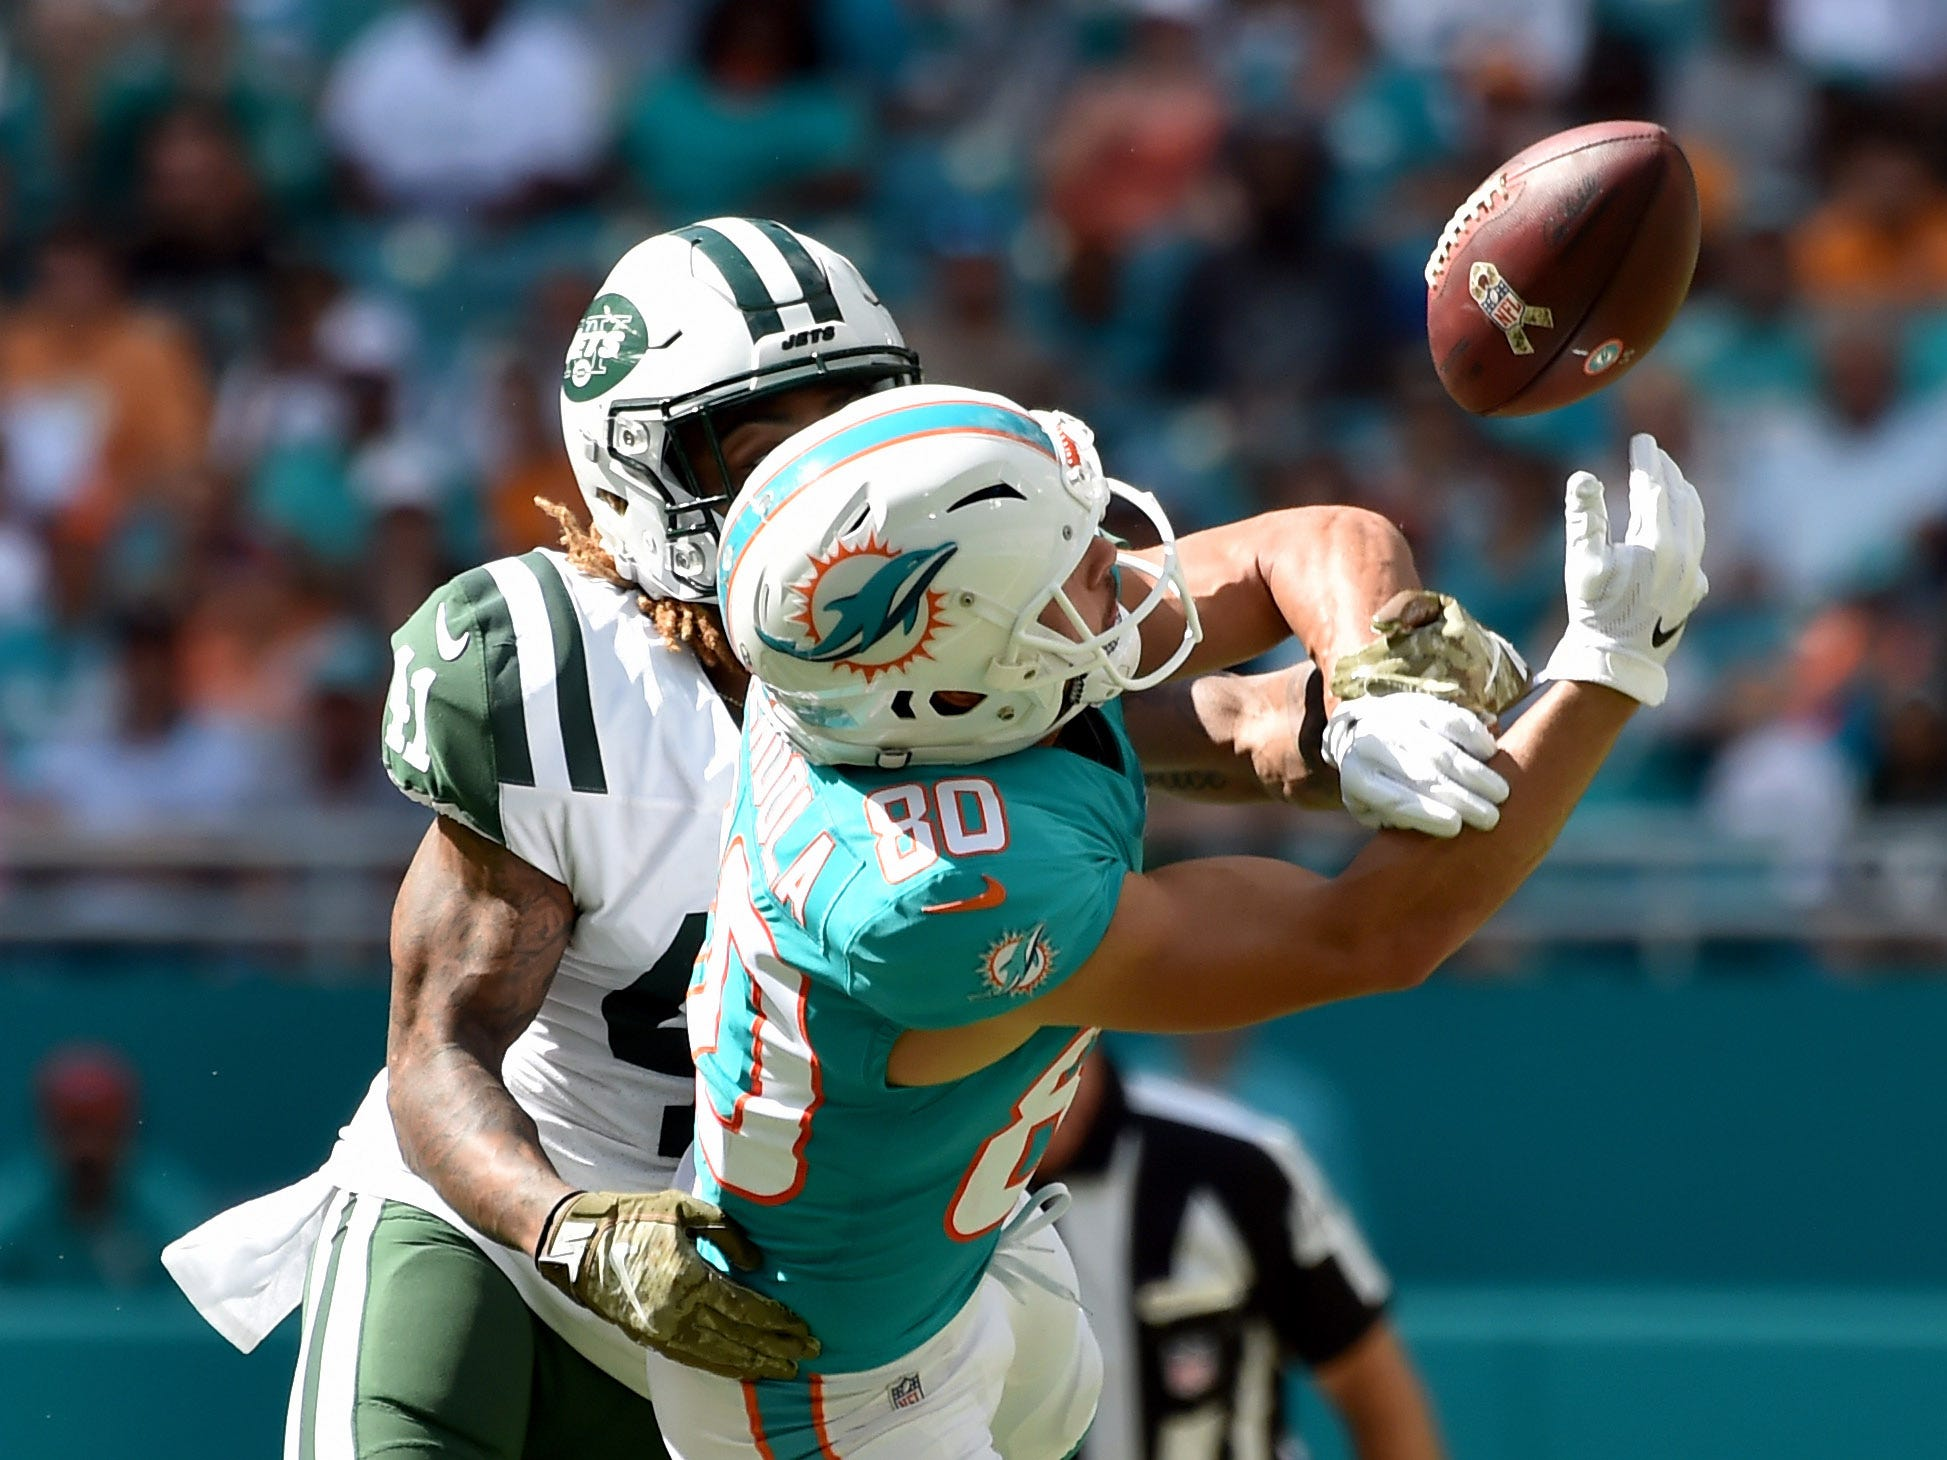 Miami Dolphins wide receiver Danny Amendola (80) can't make the catch in front of New York Jets cornerback Buster Skrine (41) during the first half at Hard Rock Stadium.